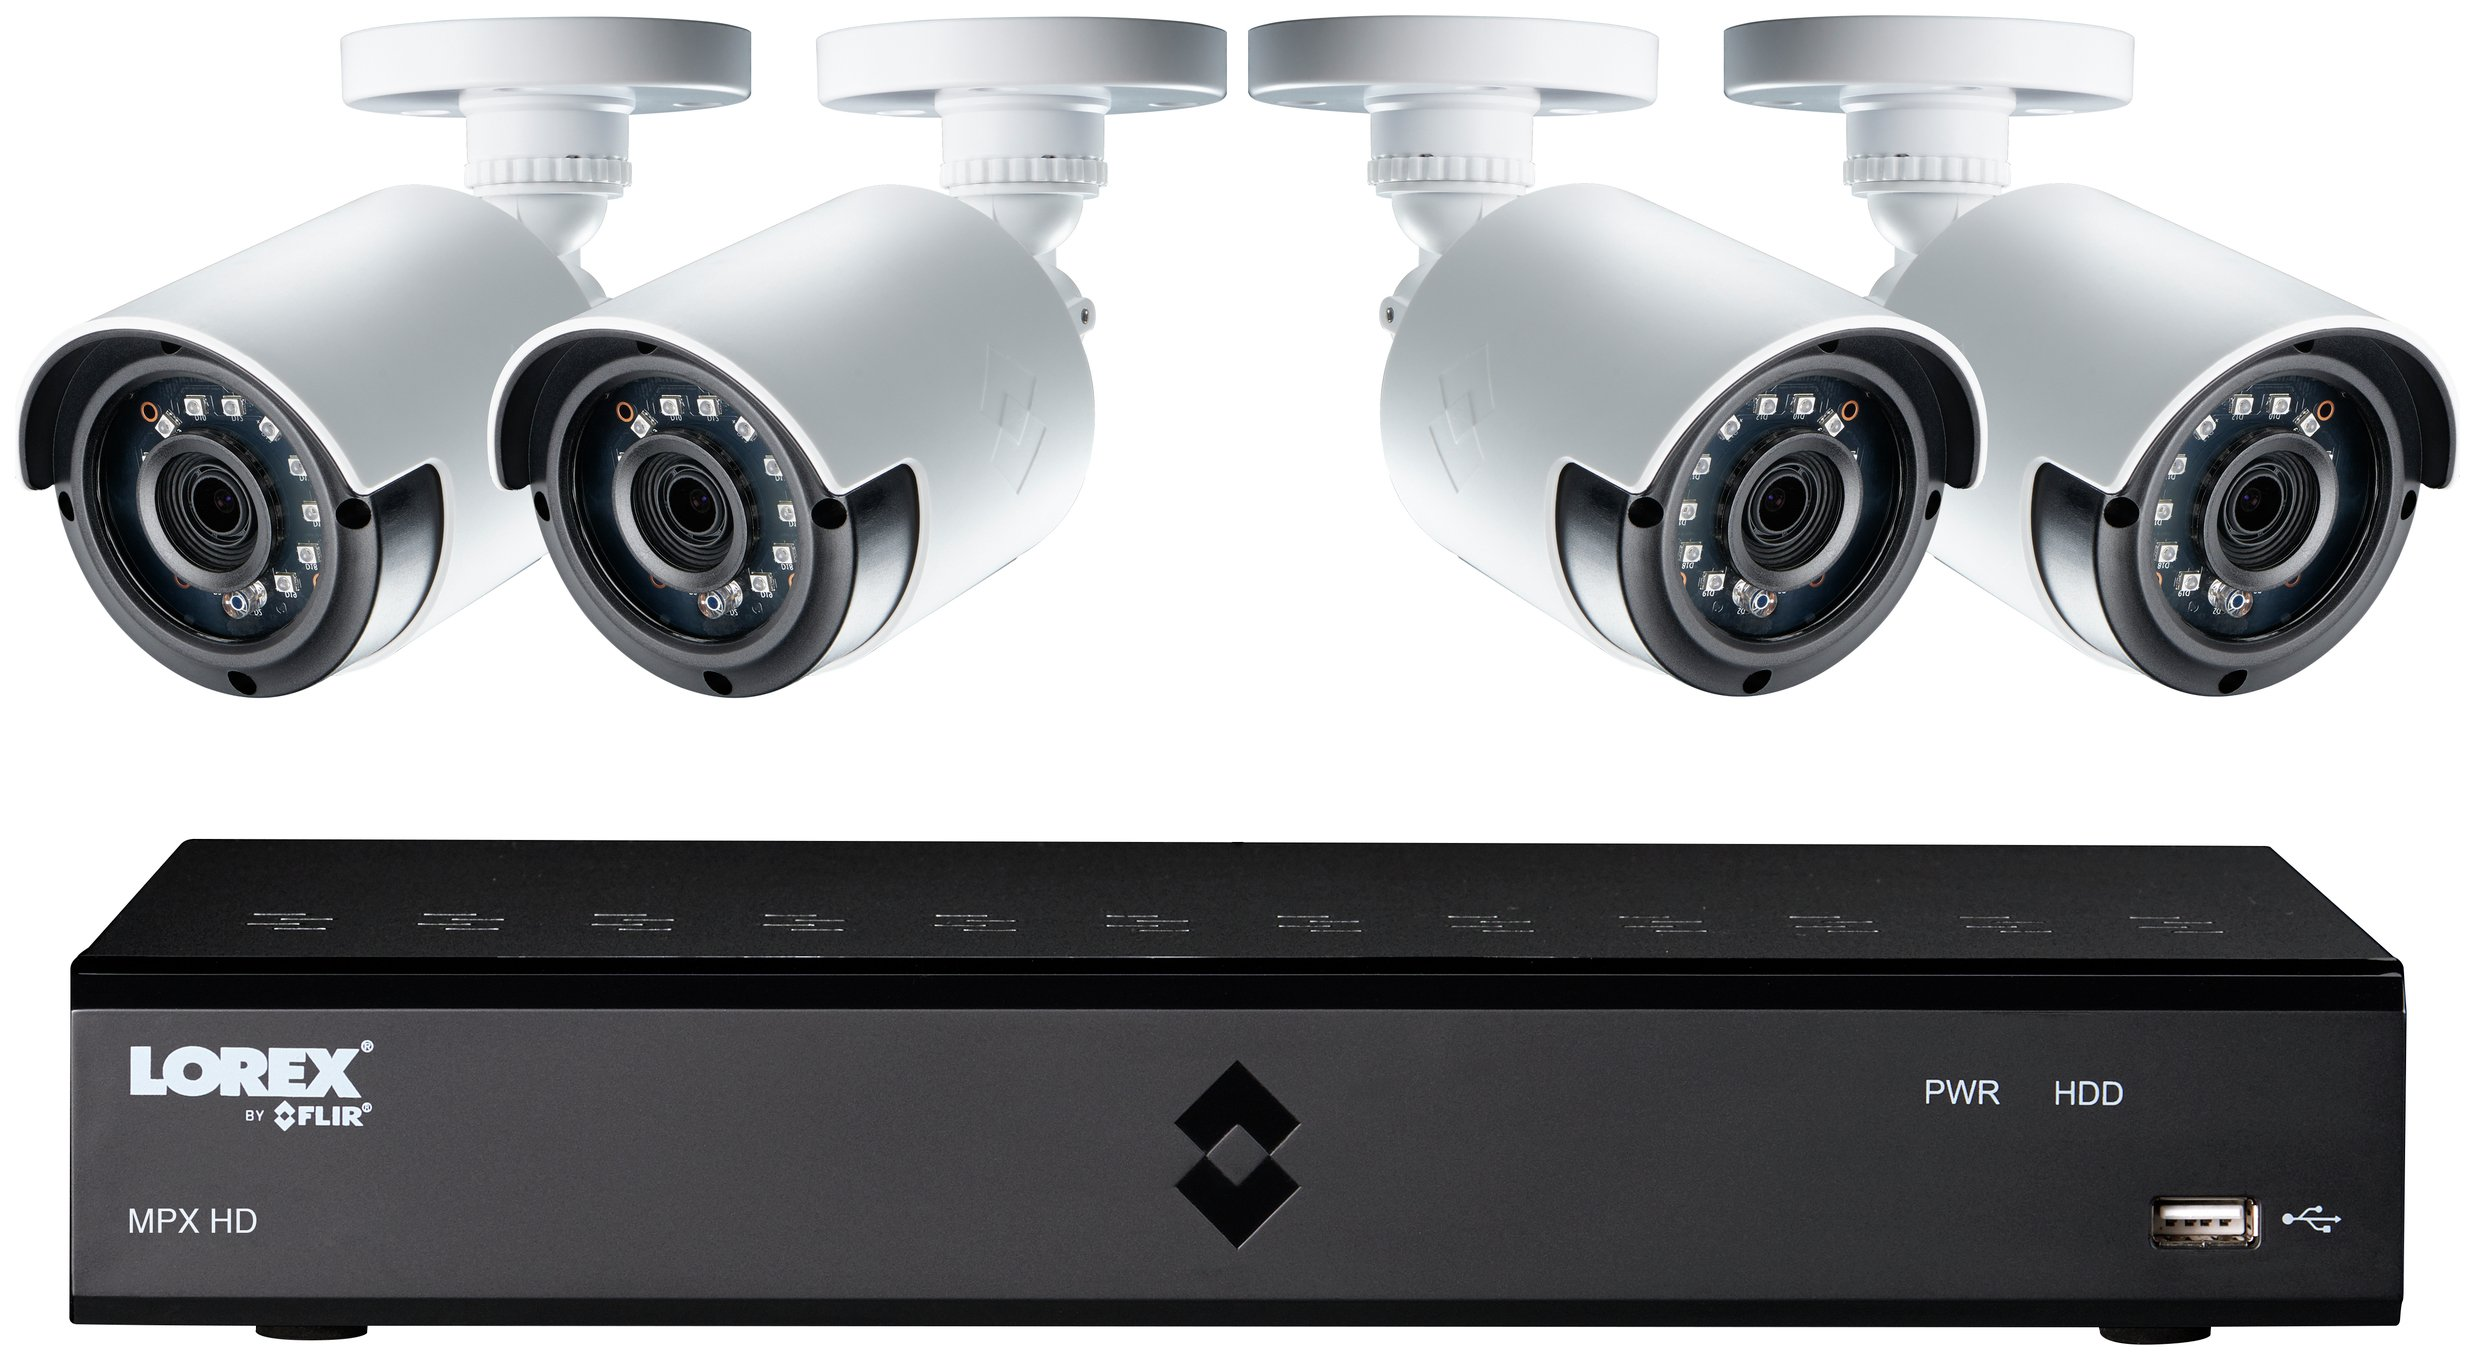 Lorex 4 Channel 1080p DVR with 4 x HD Cameras